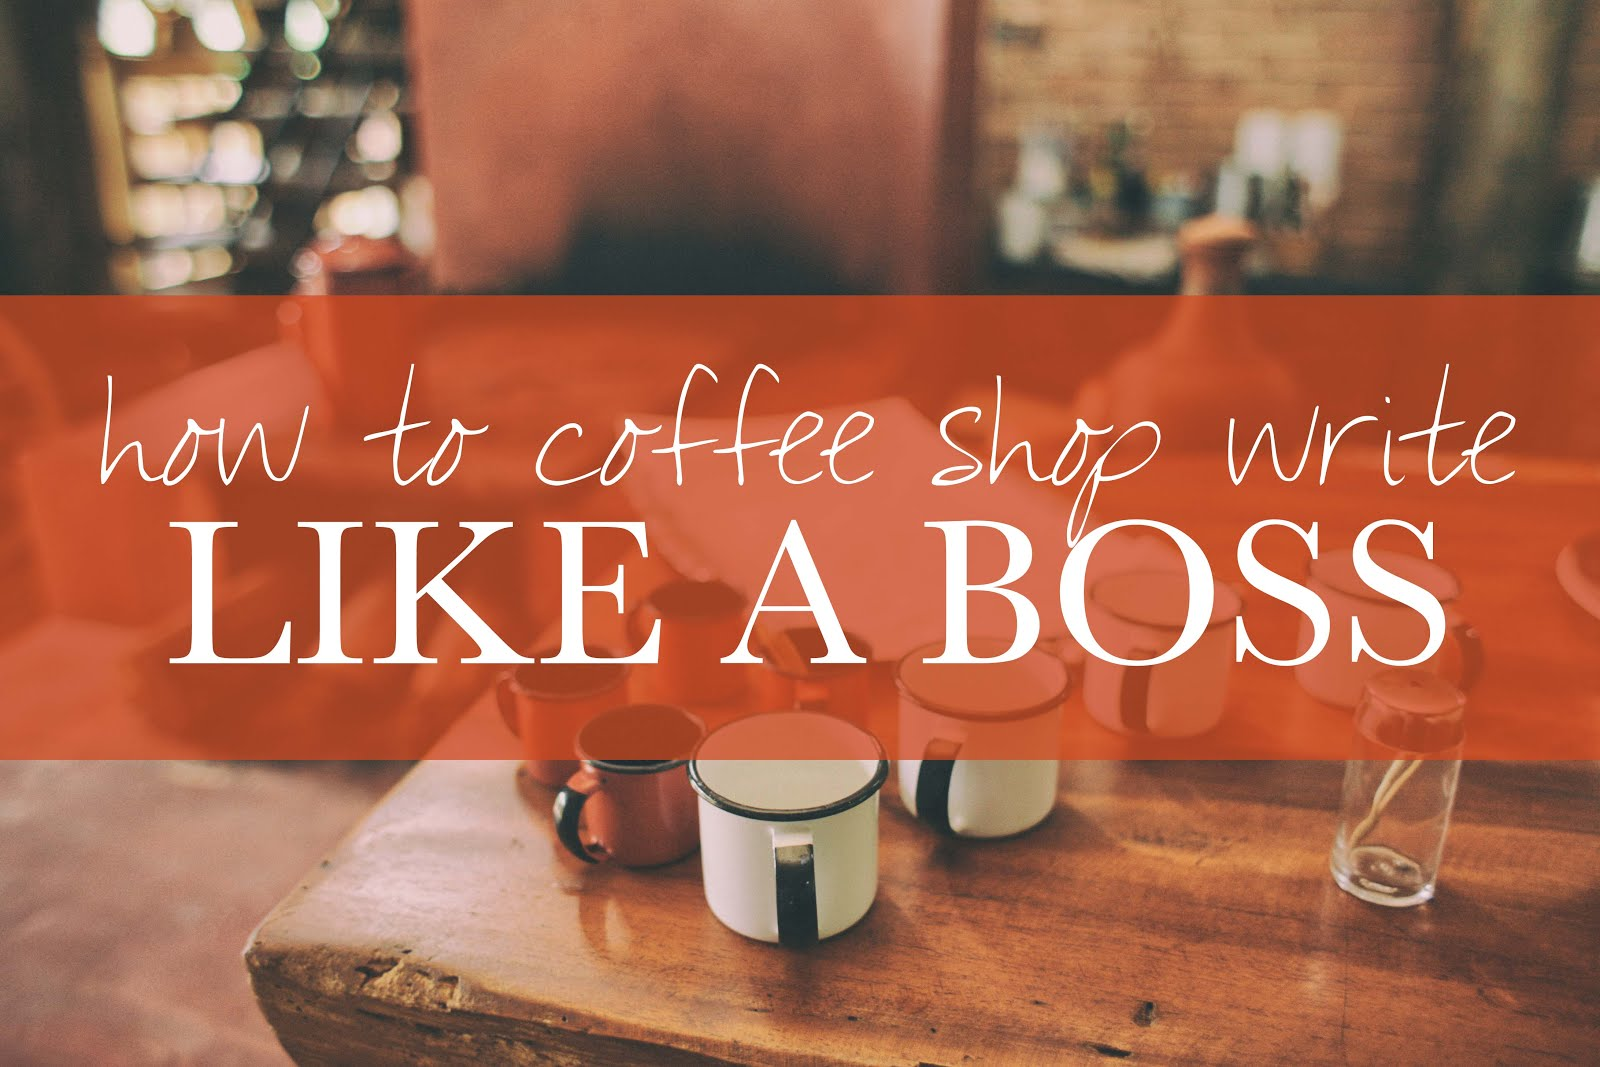 HOW TO COFFEE SHOP WRITE LIKE A BOSS